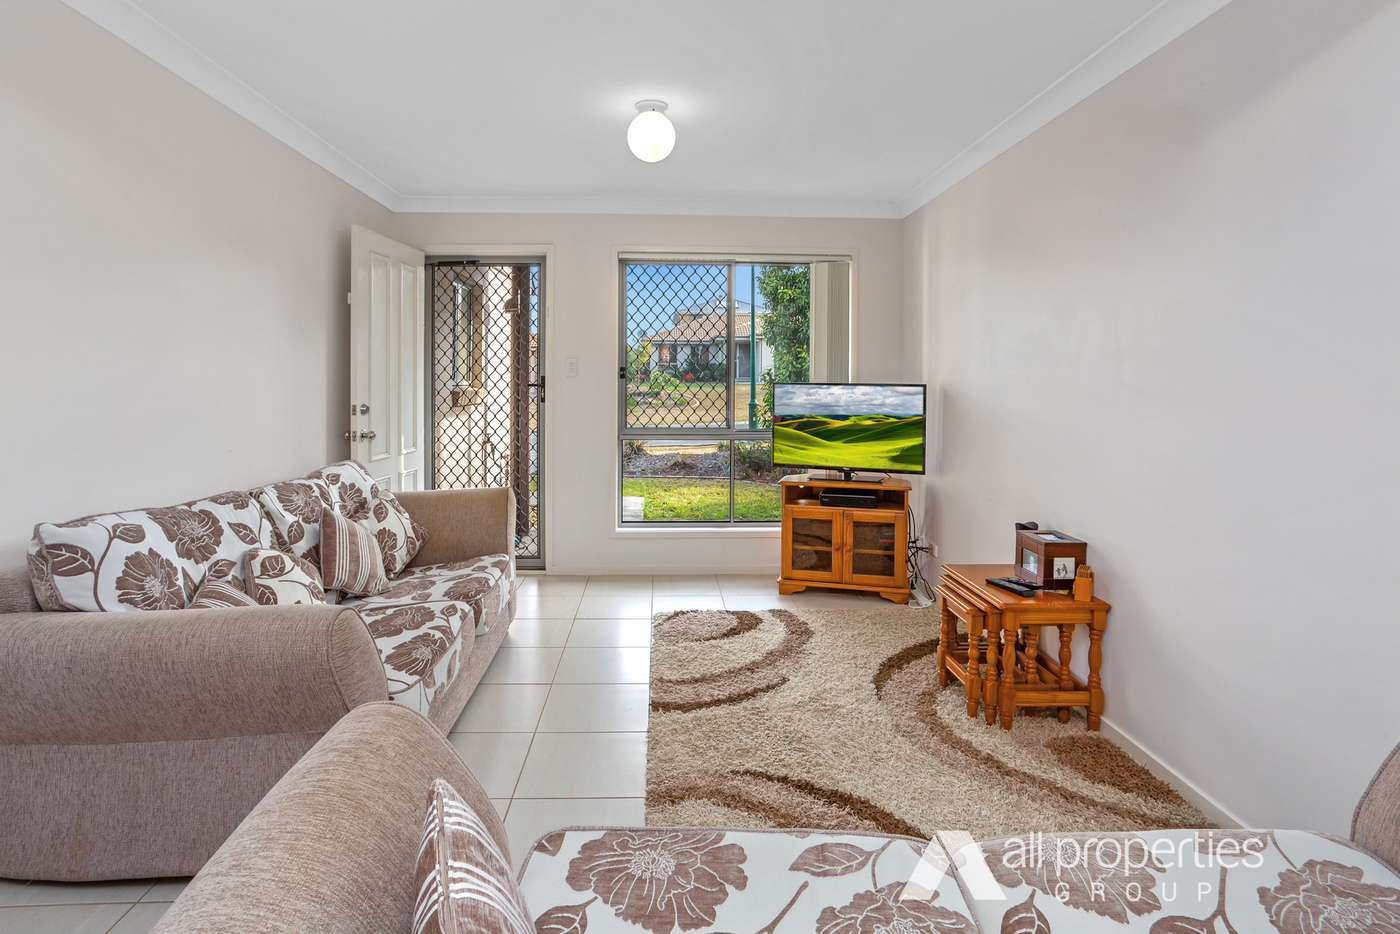 Sixth view of Homely townhouse listing, 19/99-113 Peverell Street, Hillcrest QLD 4118